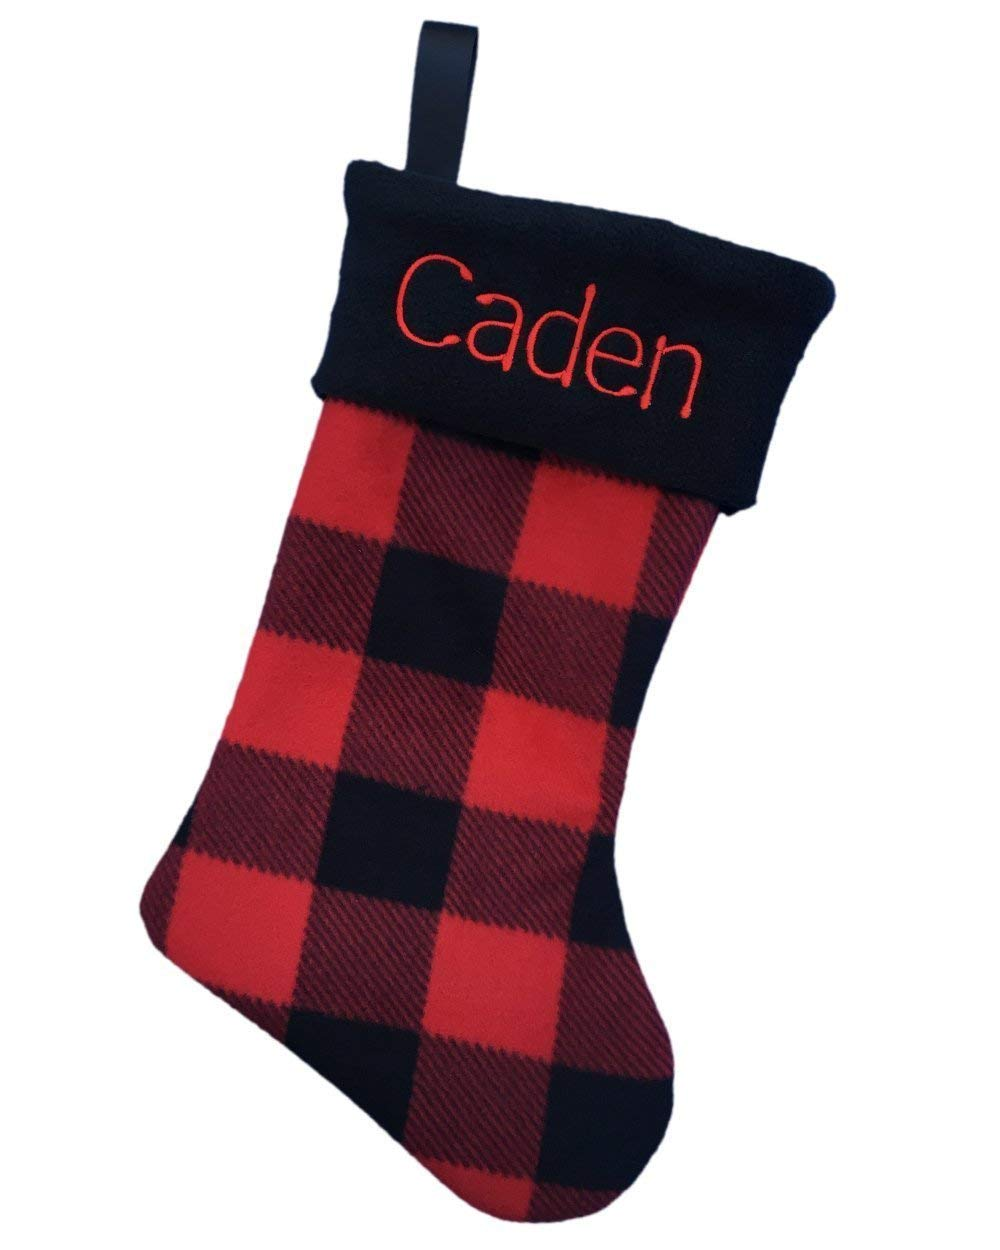 Personalized Christmas Stocking Custom Embroidered Name, Red Buffalo Check